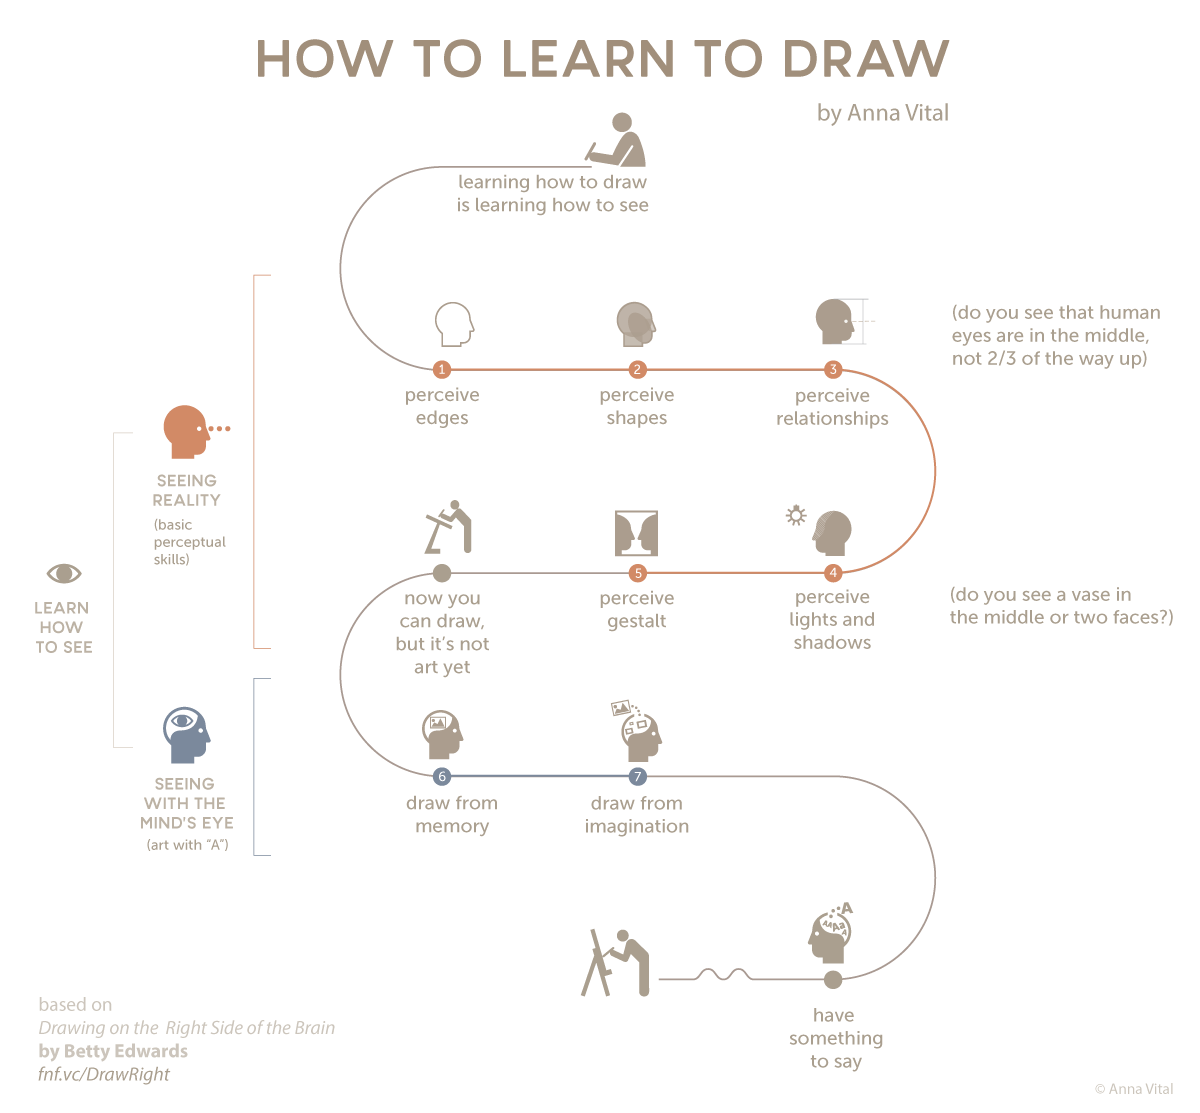 How To Learn To Draw #Infographic